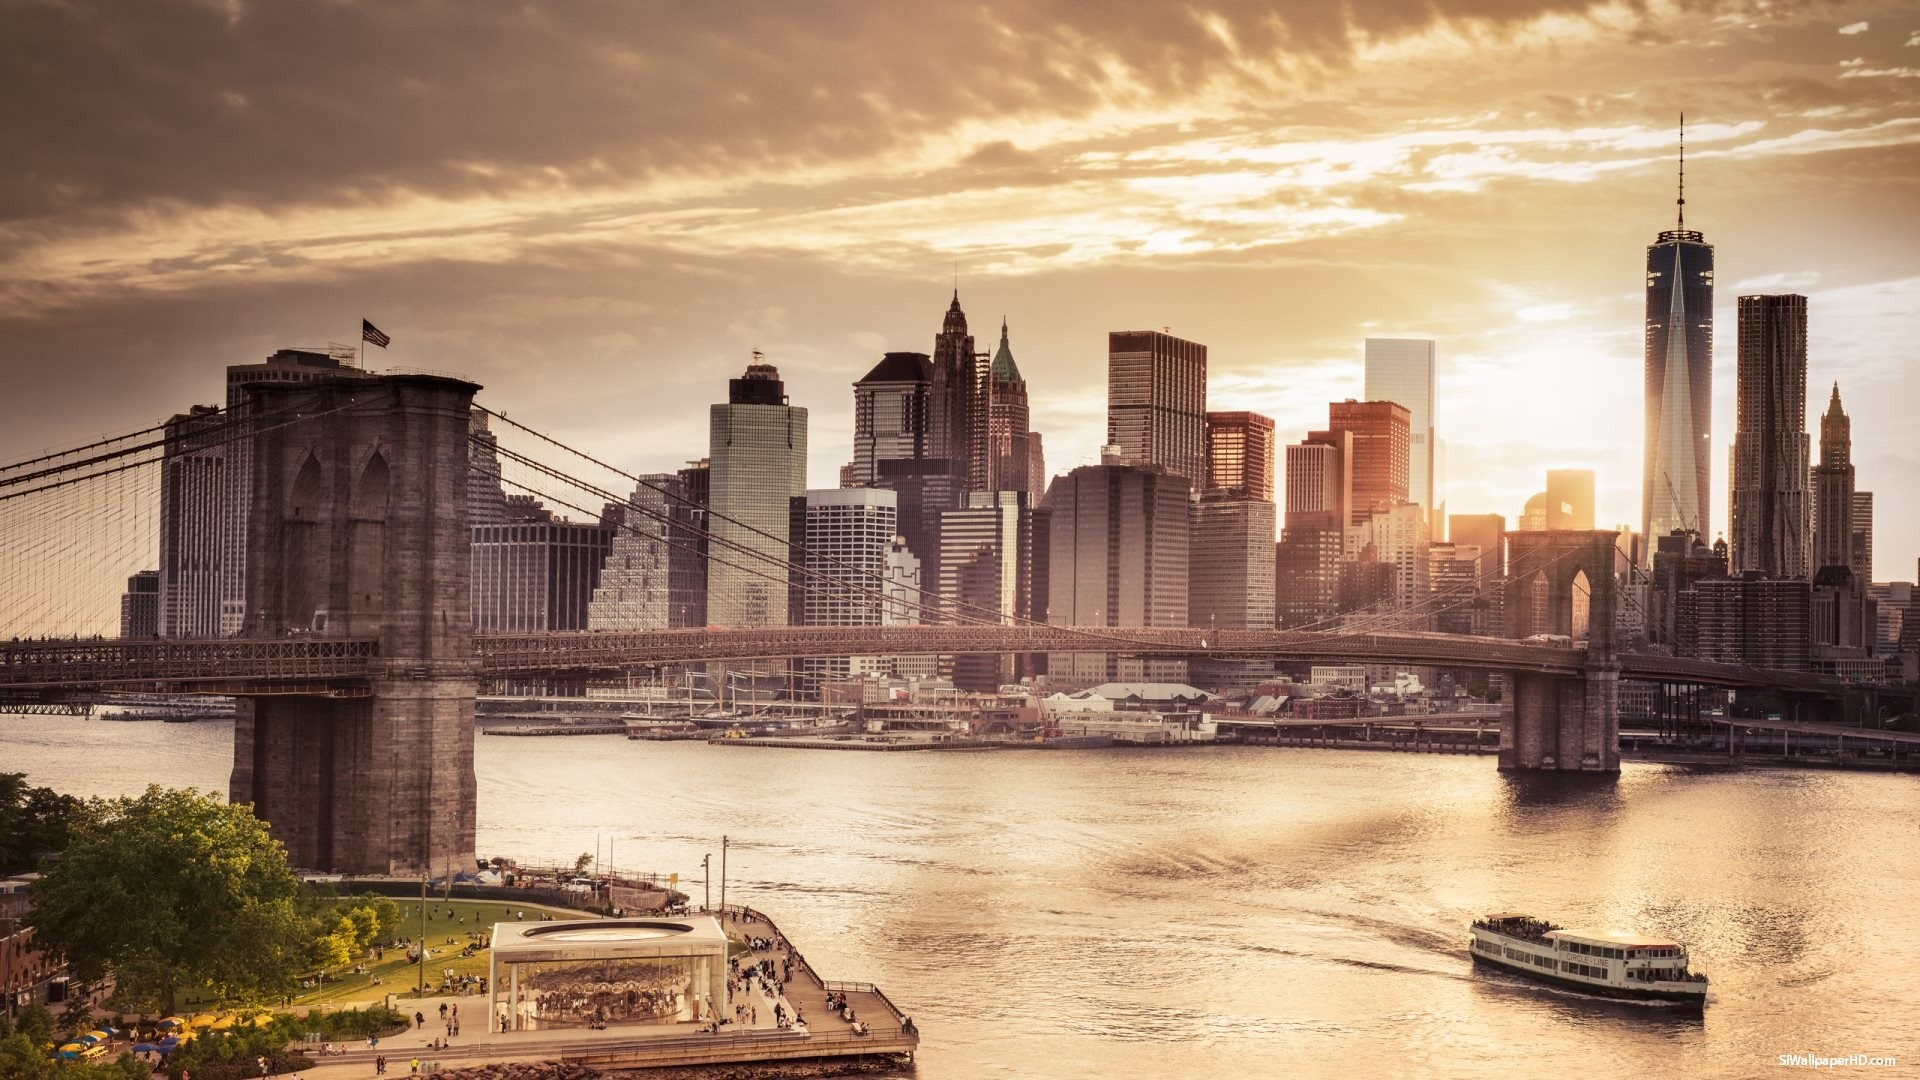 New york skyline wallpaper wallpapertag - New york skyline computer wallpaper ...